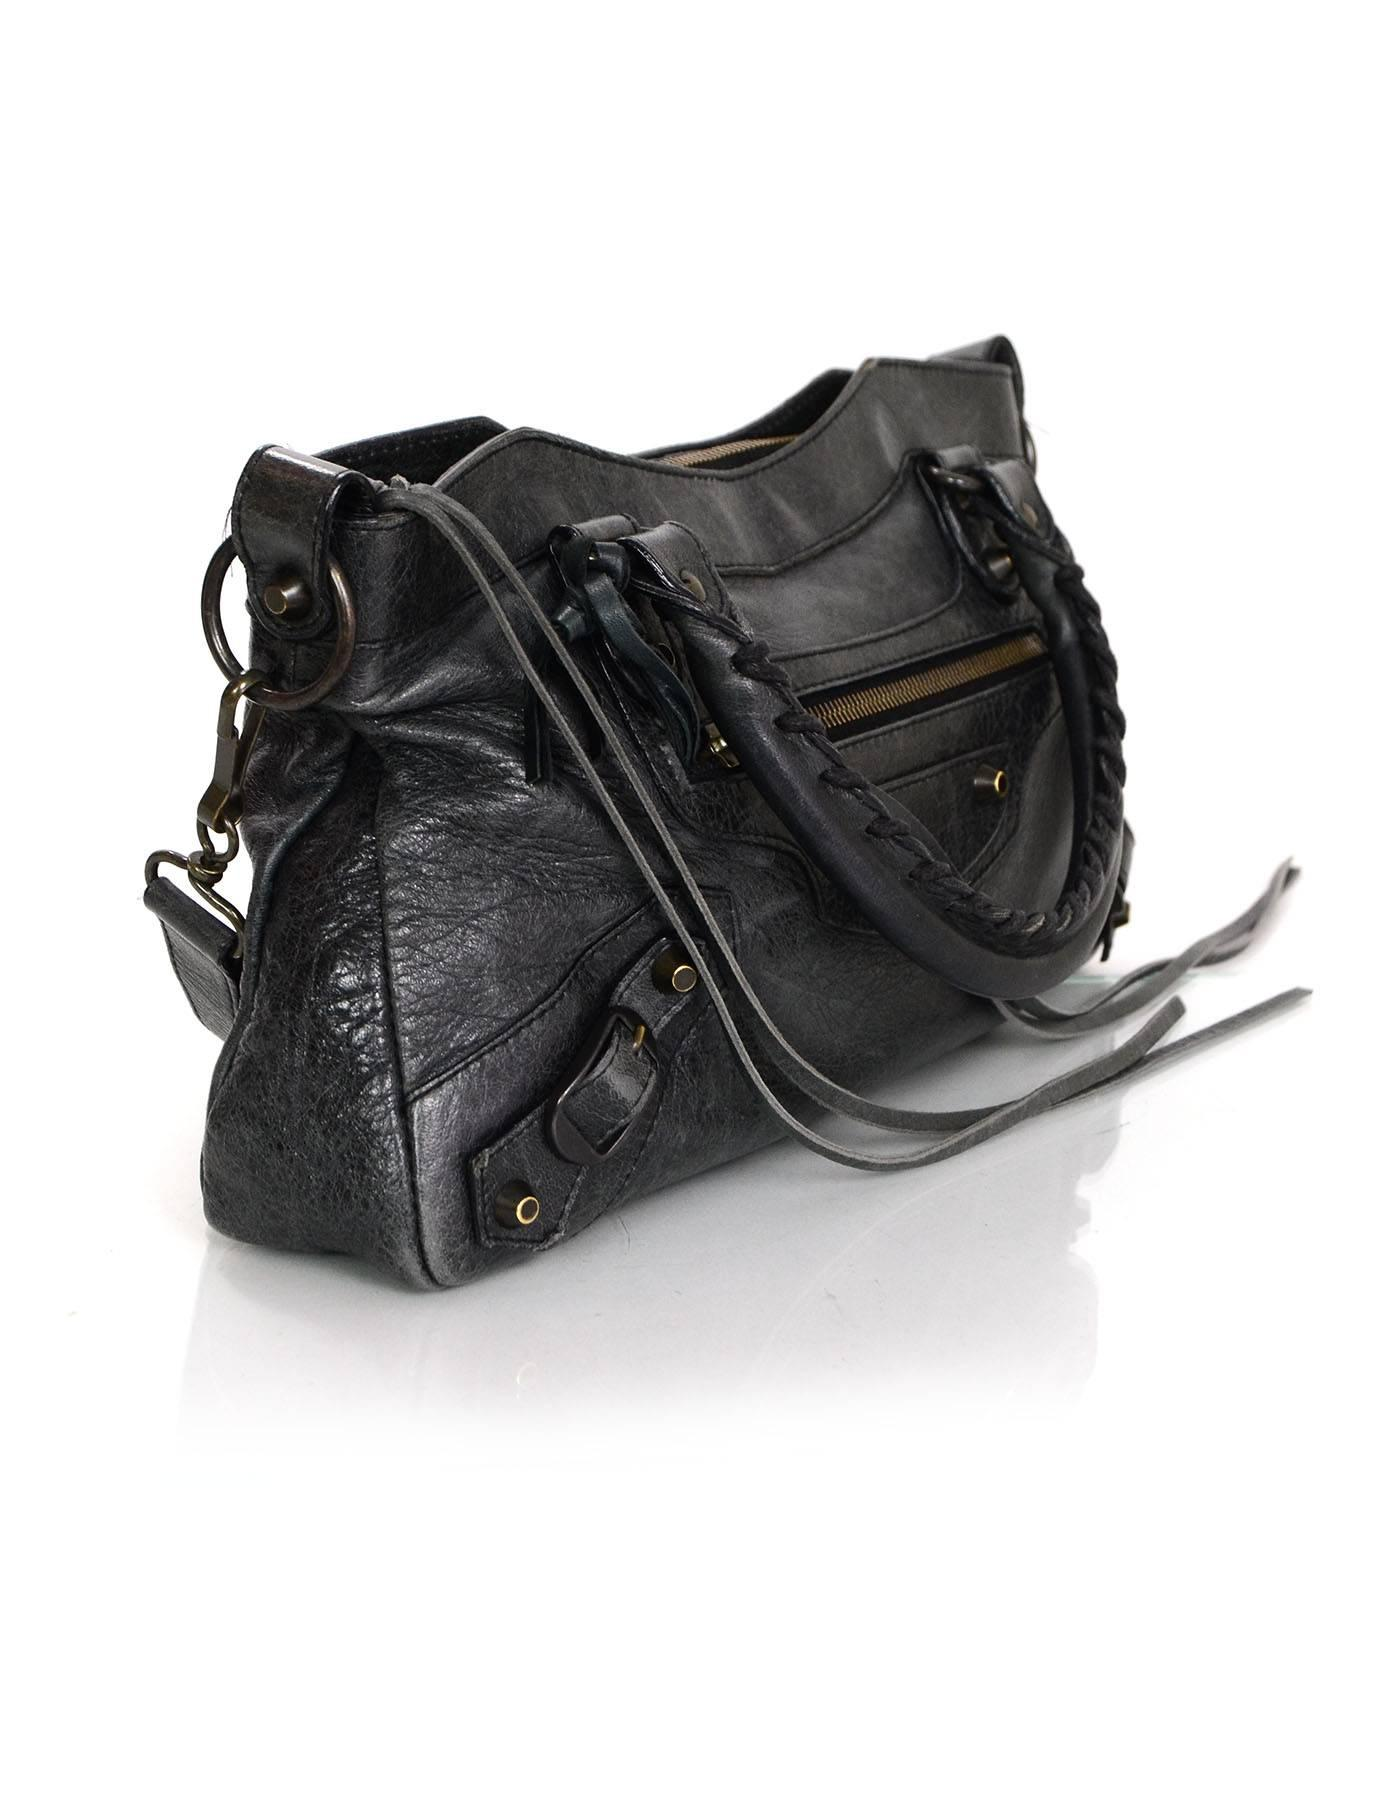 6f2df9d6d30 Balenciaga Charcoal Distressed Leather Classic First City Moto Bag For Sale  at 1stdibs